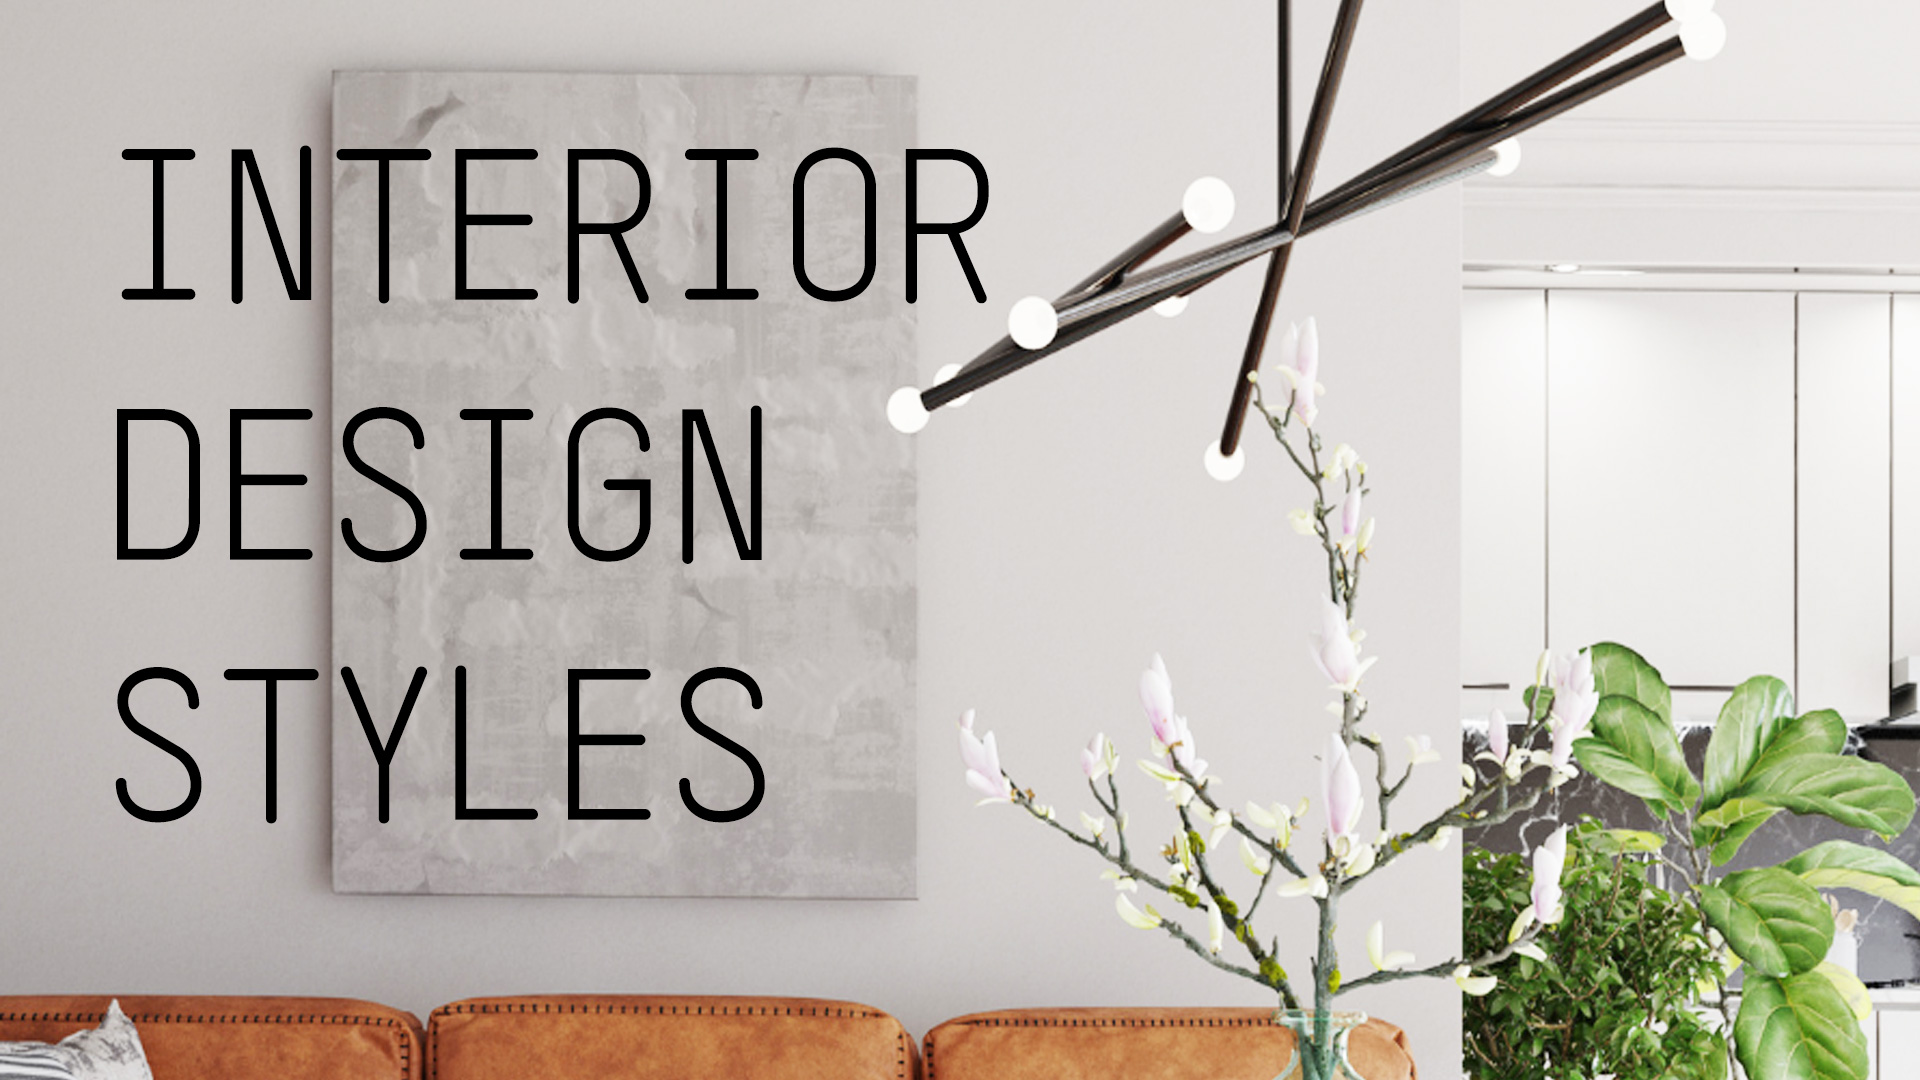 9 interior design styles for your home.